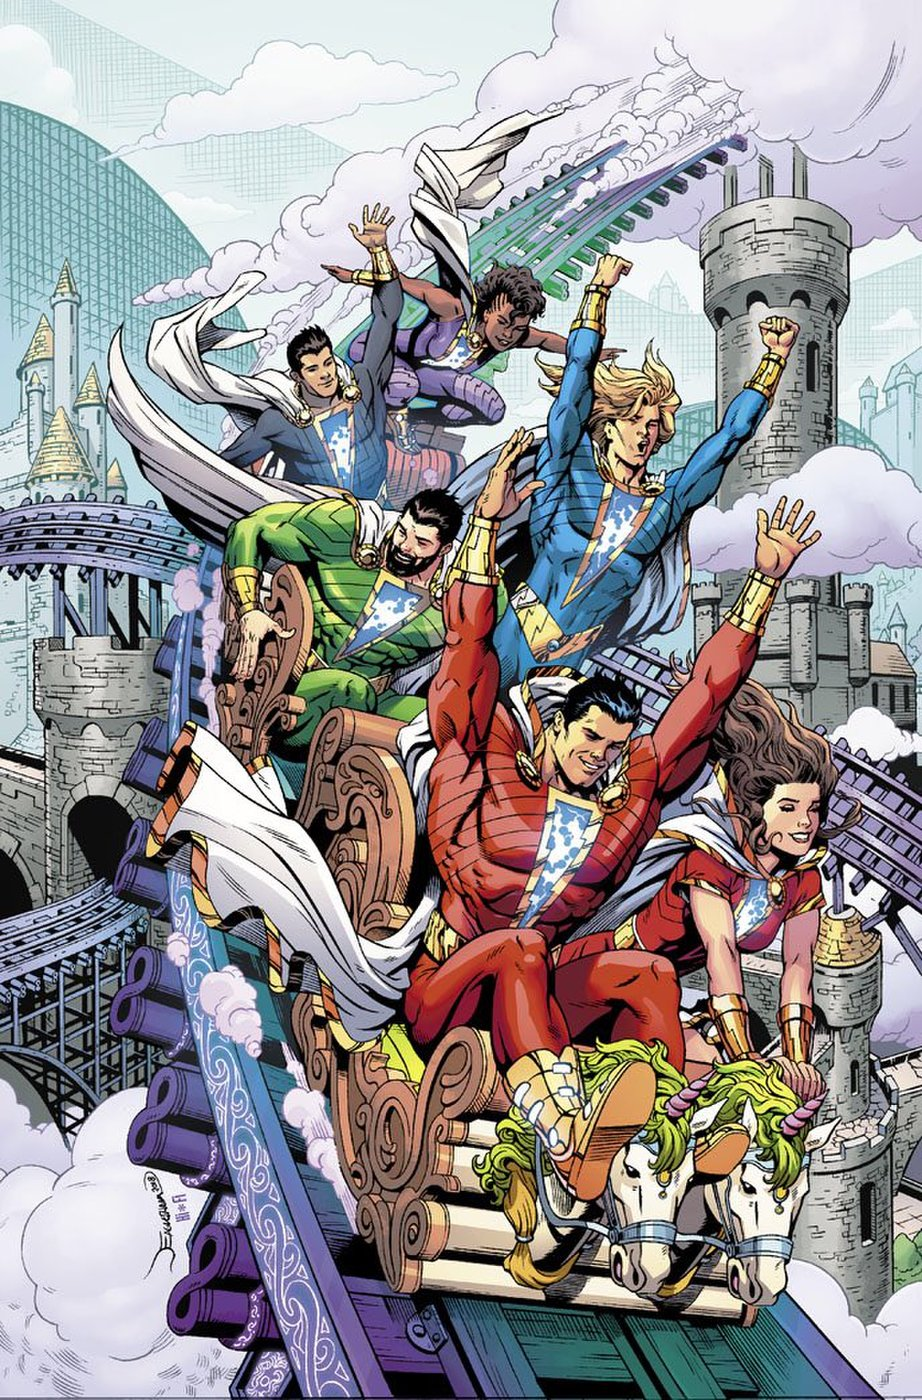 Here's hoping we enjoy this book as much as the Shazam family is enjoying this roller coaster.